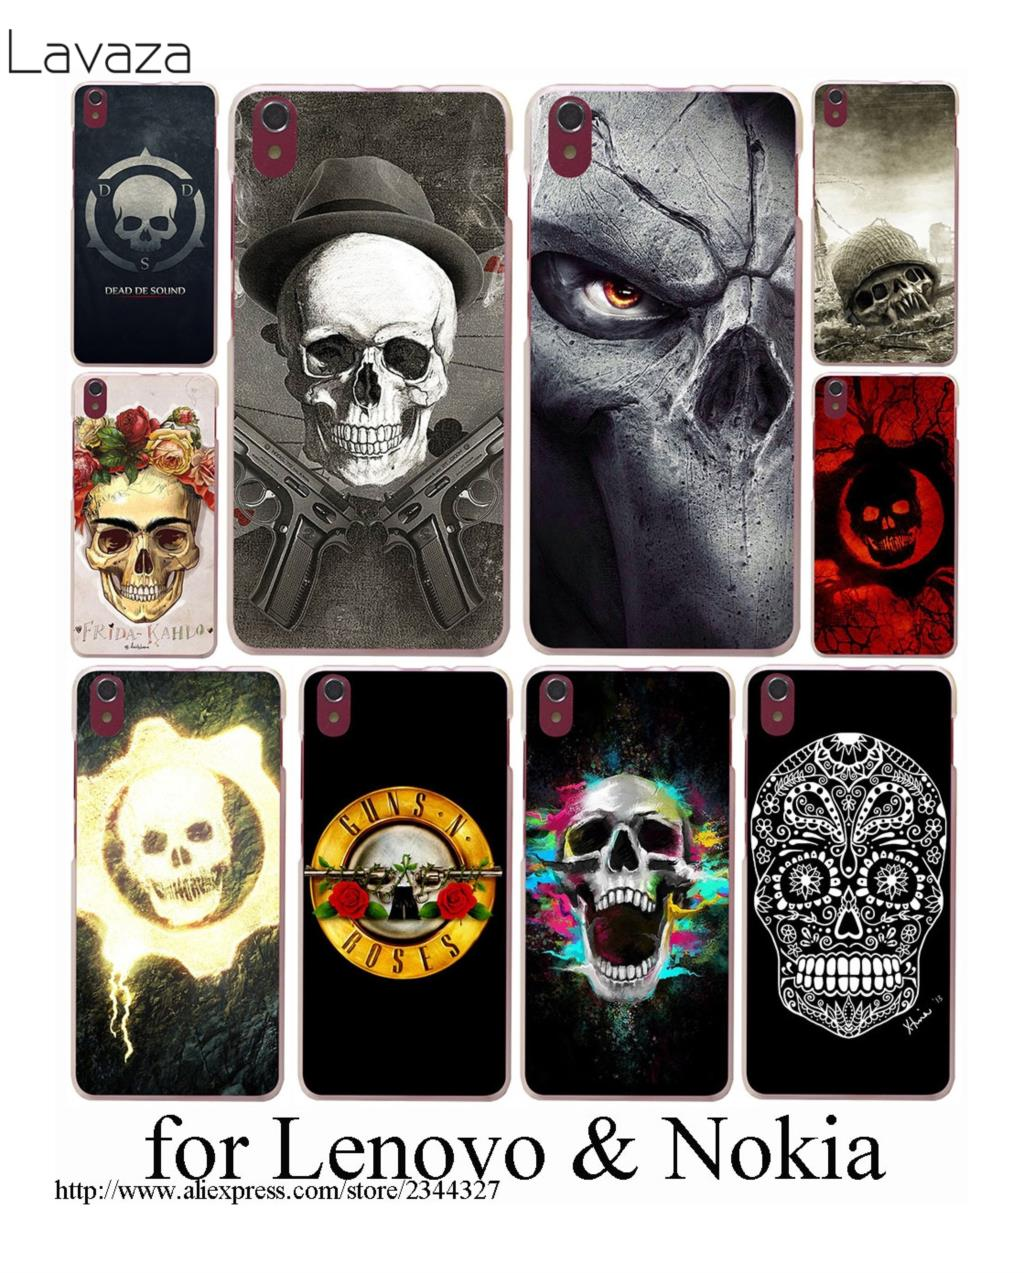 Lavaza Dead De Sound Skull Hard Case for Lenovo K6 note A328 A536 A1000 A2010 A5000 S850 ...